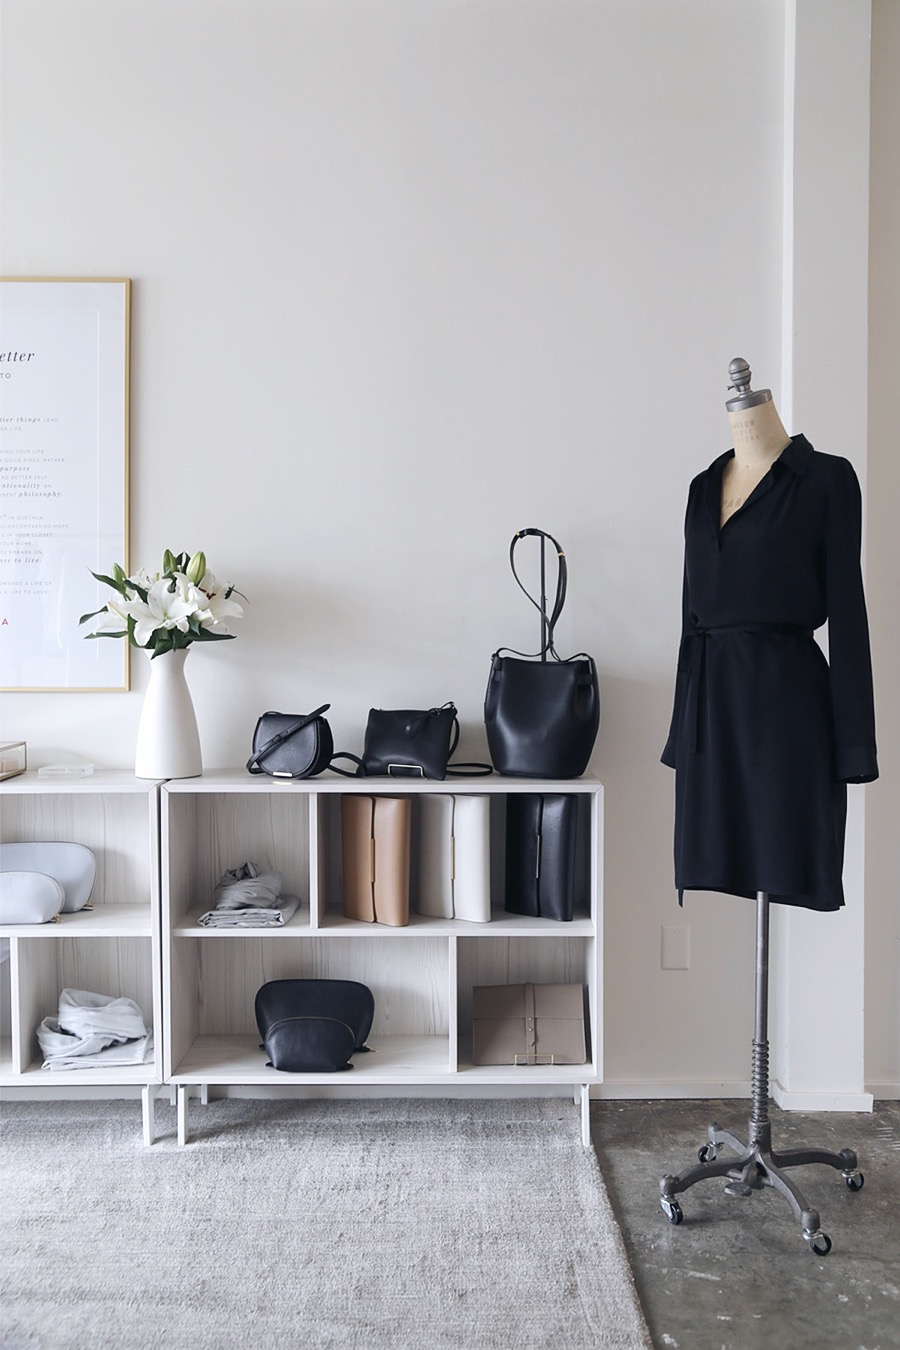 clothing storage + dress form via @citysage